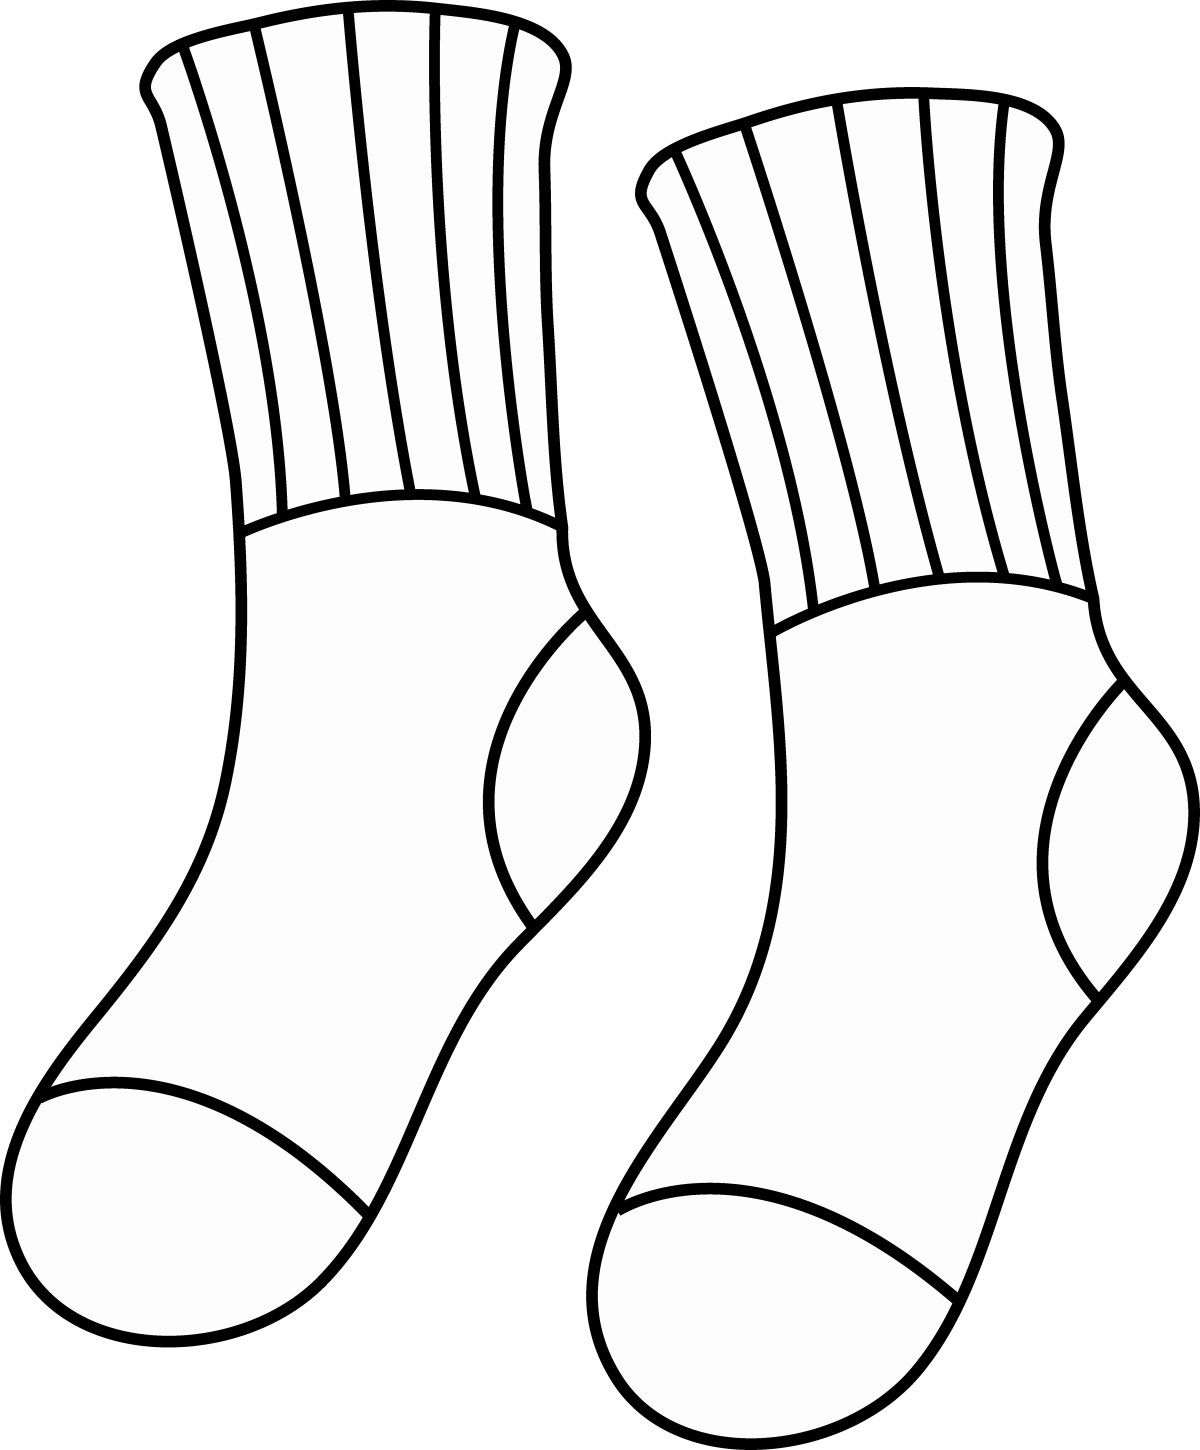 Free Download Socks Coloring Pages in 2020 Coloring